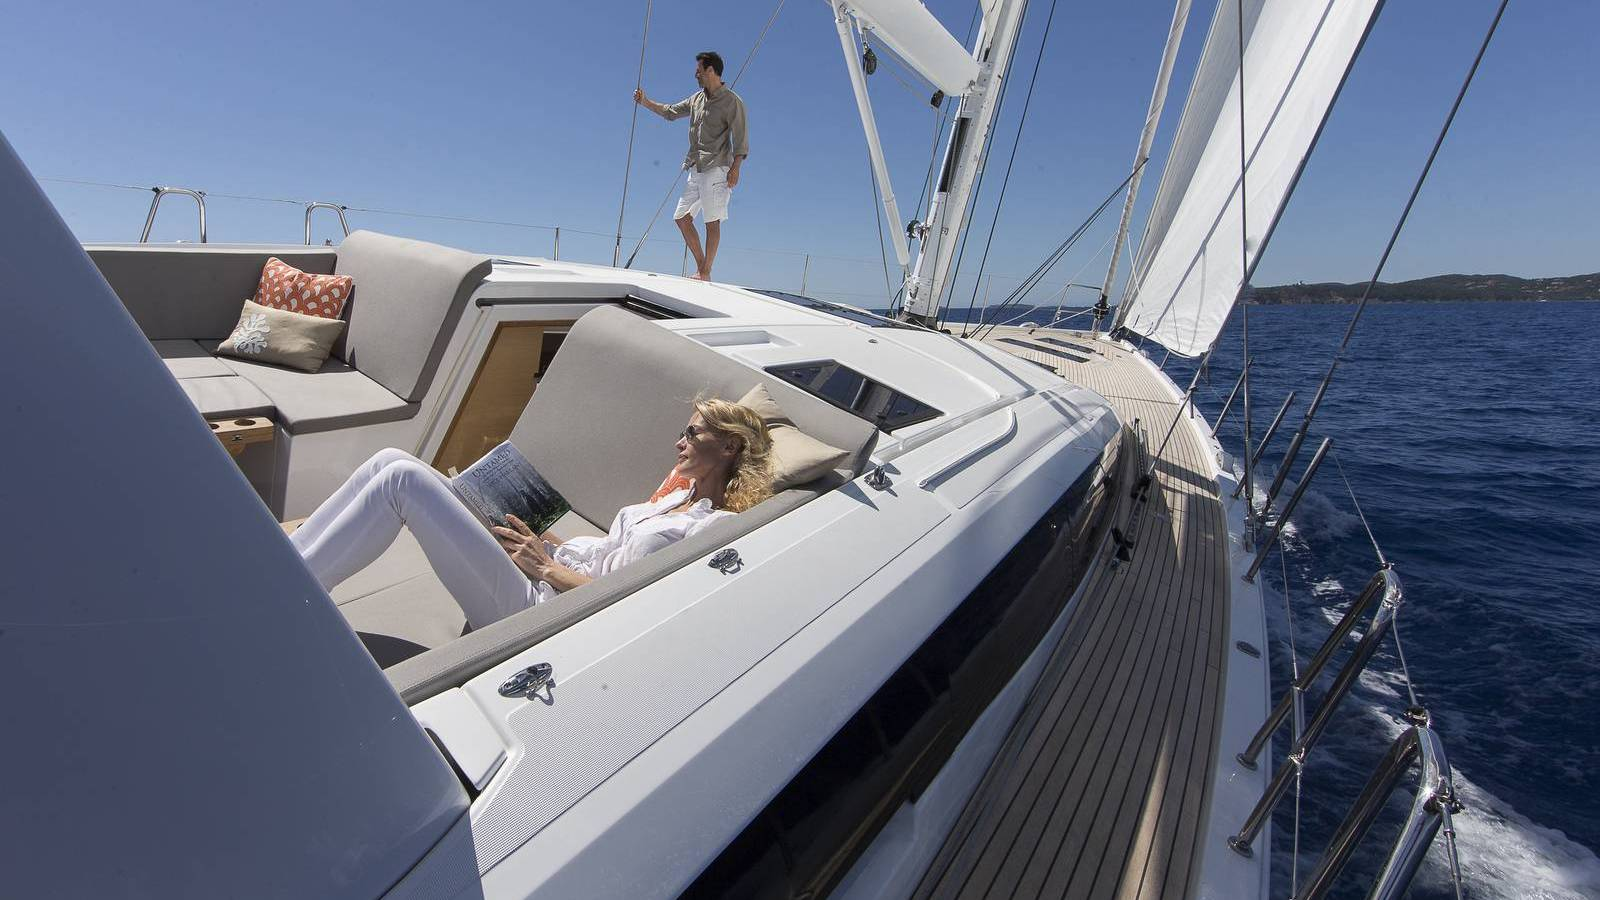 Argentous Yacht Luxury Sailing Holidays